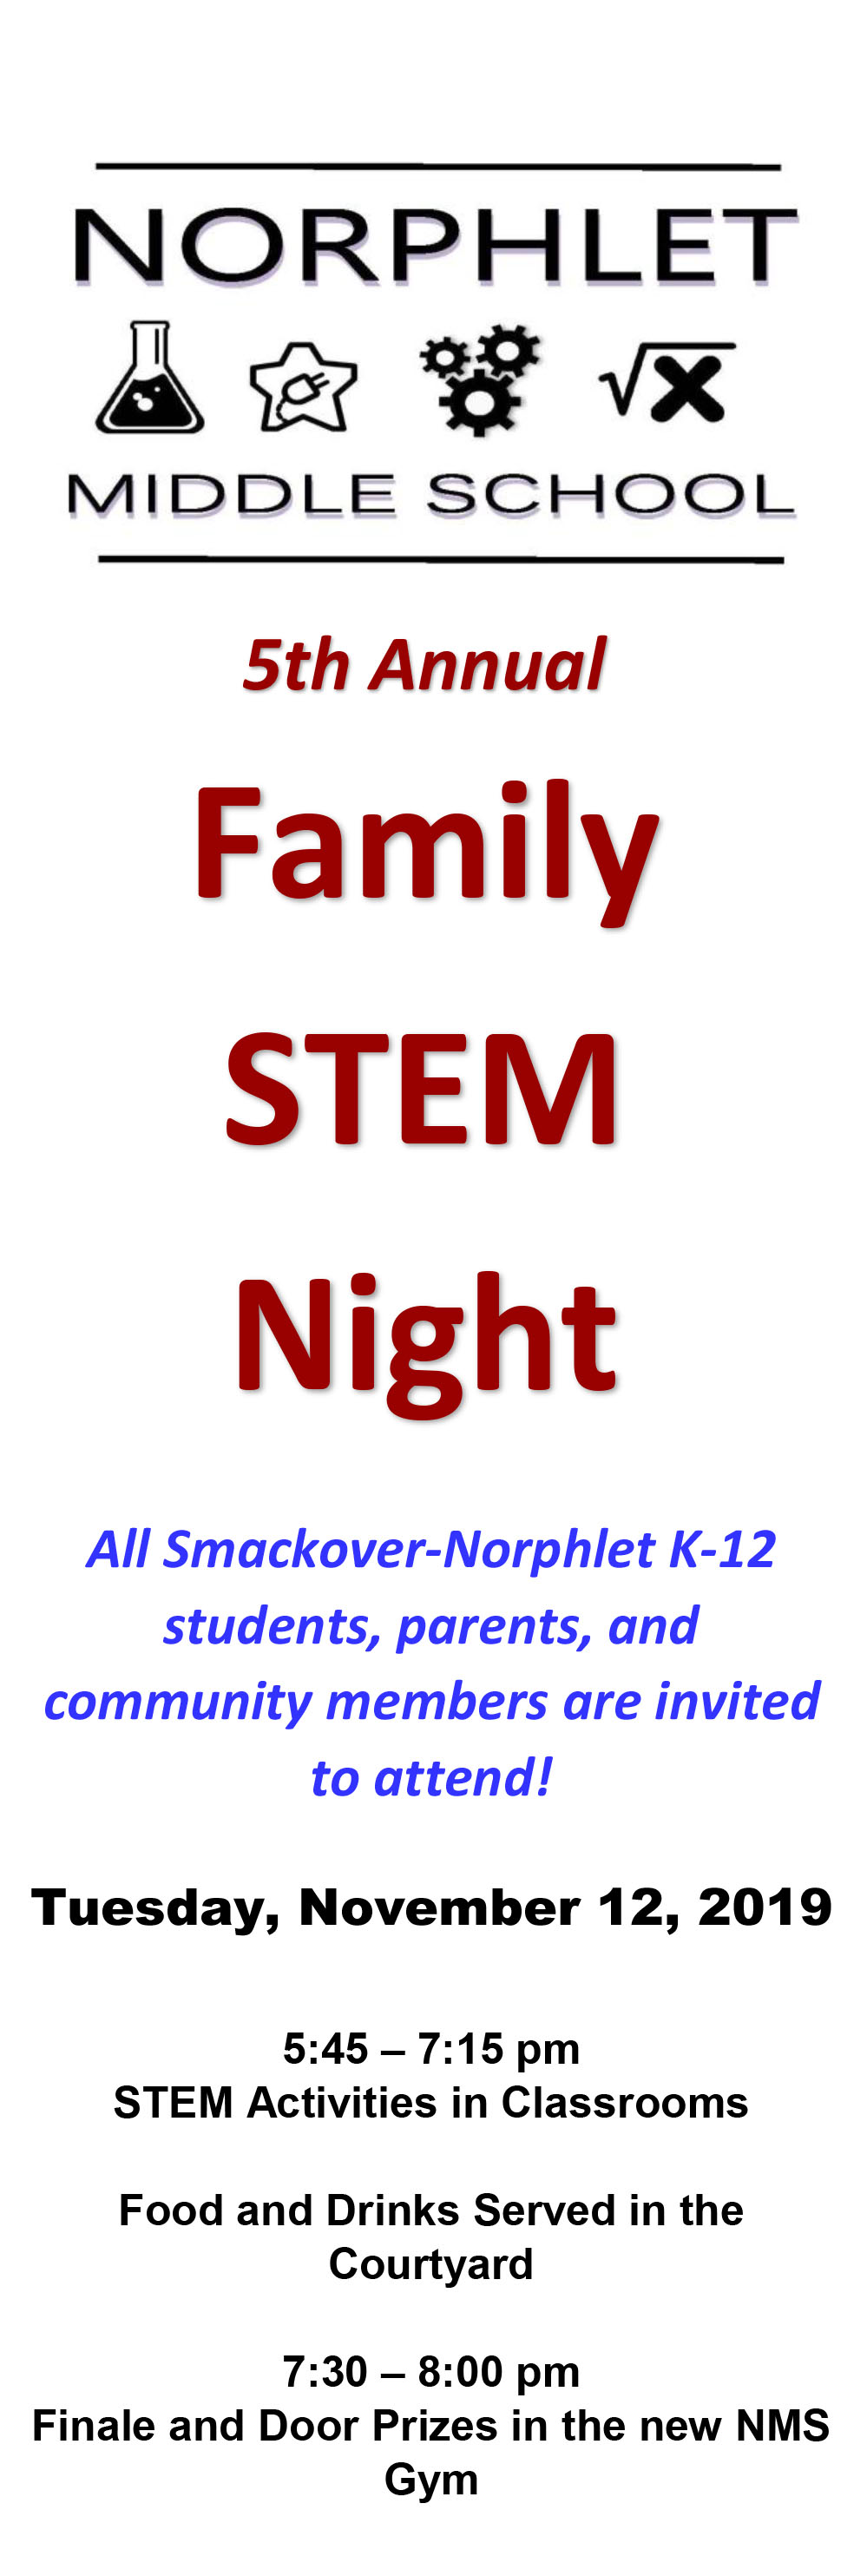 5TH ANNUAL FAMILY STEM NIGHT IS COMING SOON!!!